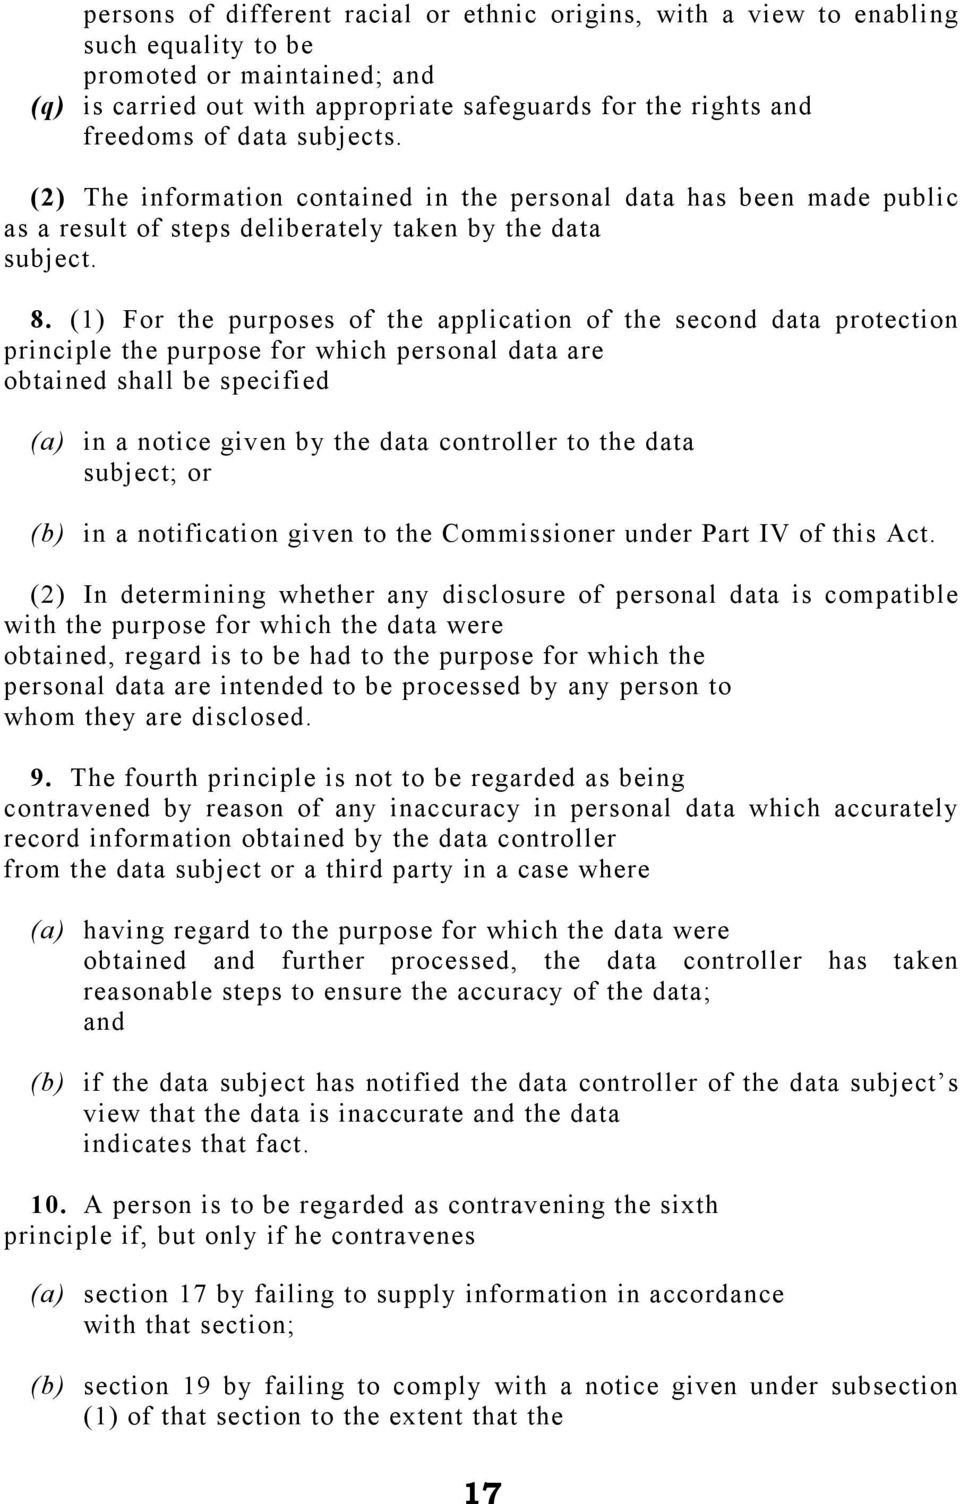 (1) For the purposes of the application of the second data protection principle the purpose for which personal data are obtained shall be specified (a) in a notice given by the data controller to the